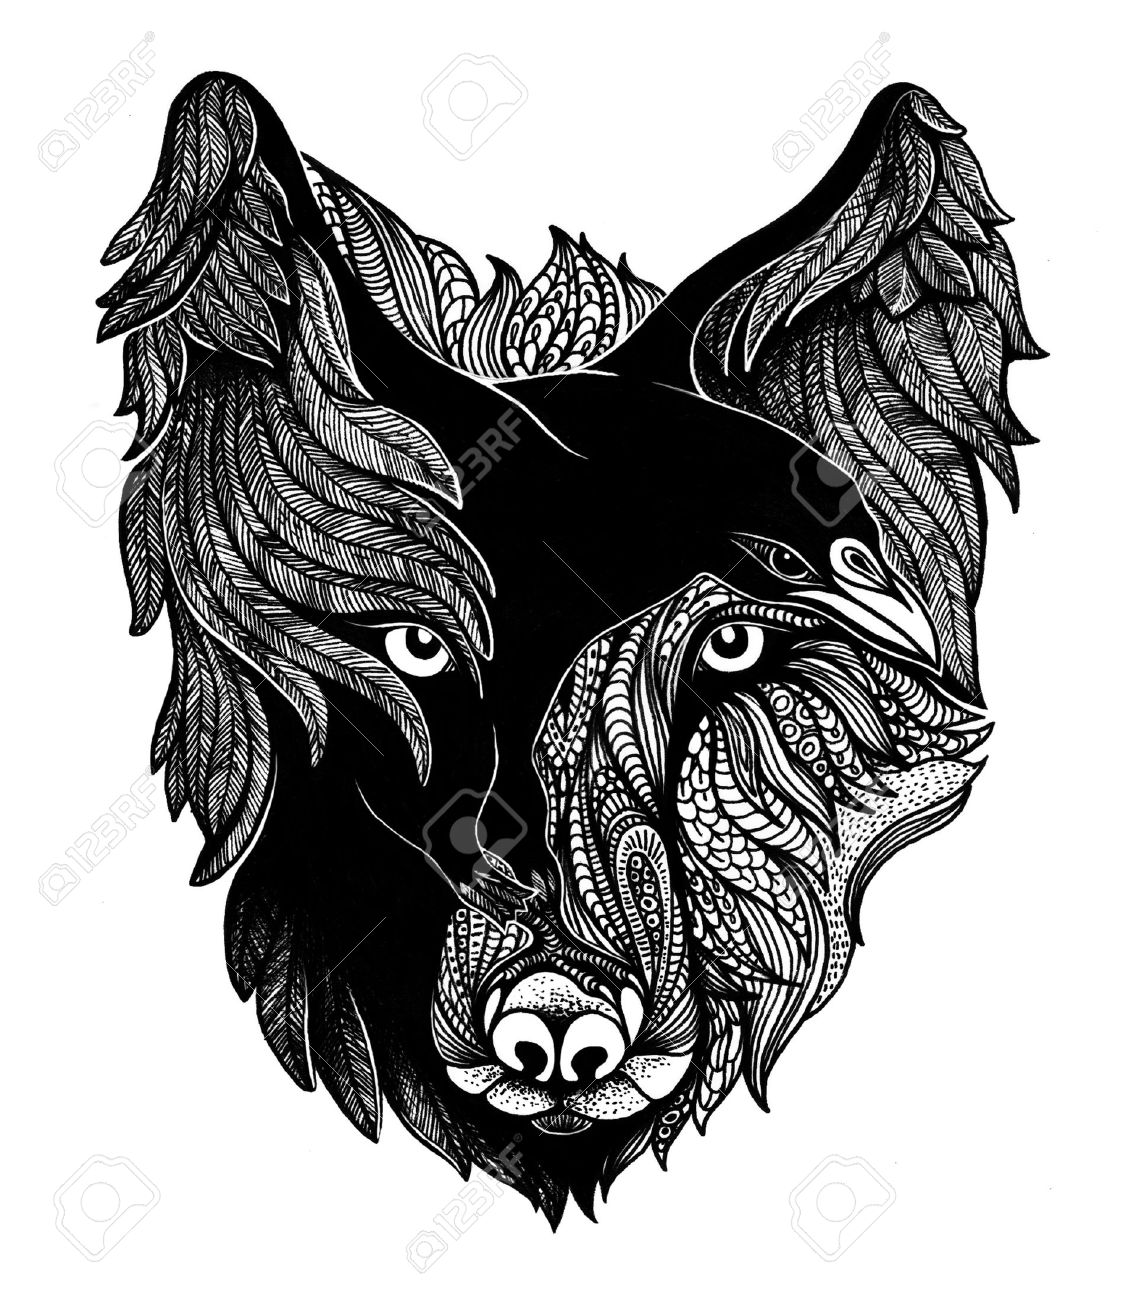 Wolf and raven black and white art illustration. - 57607373